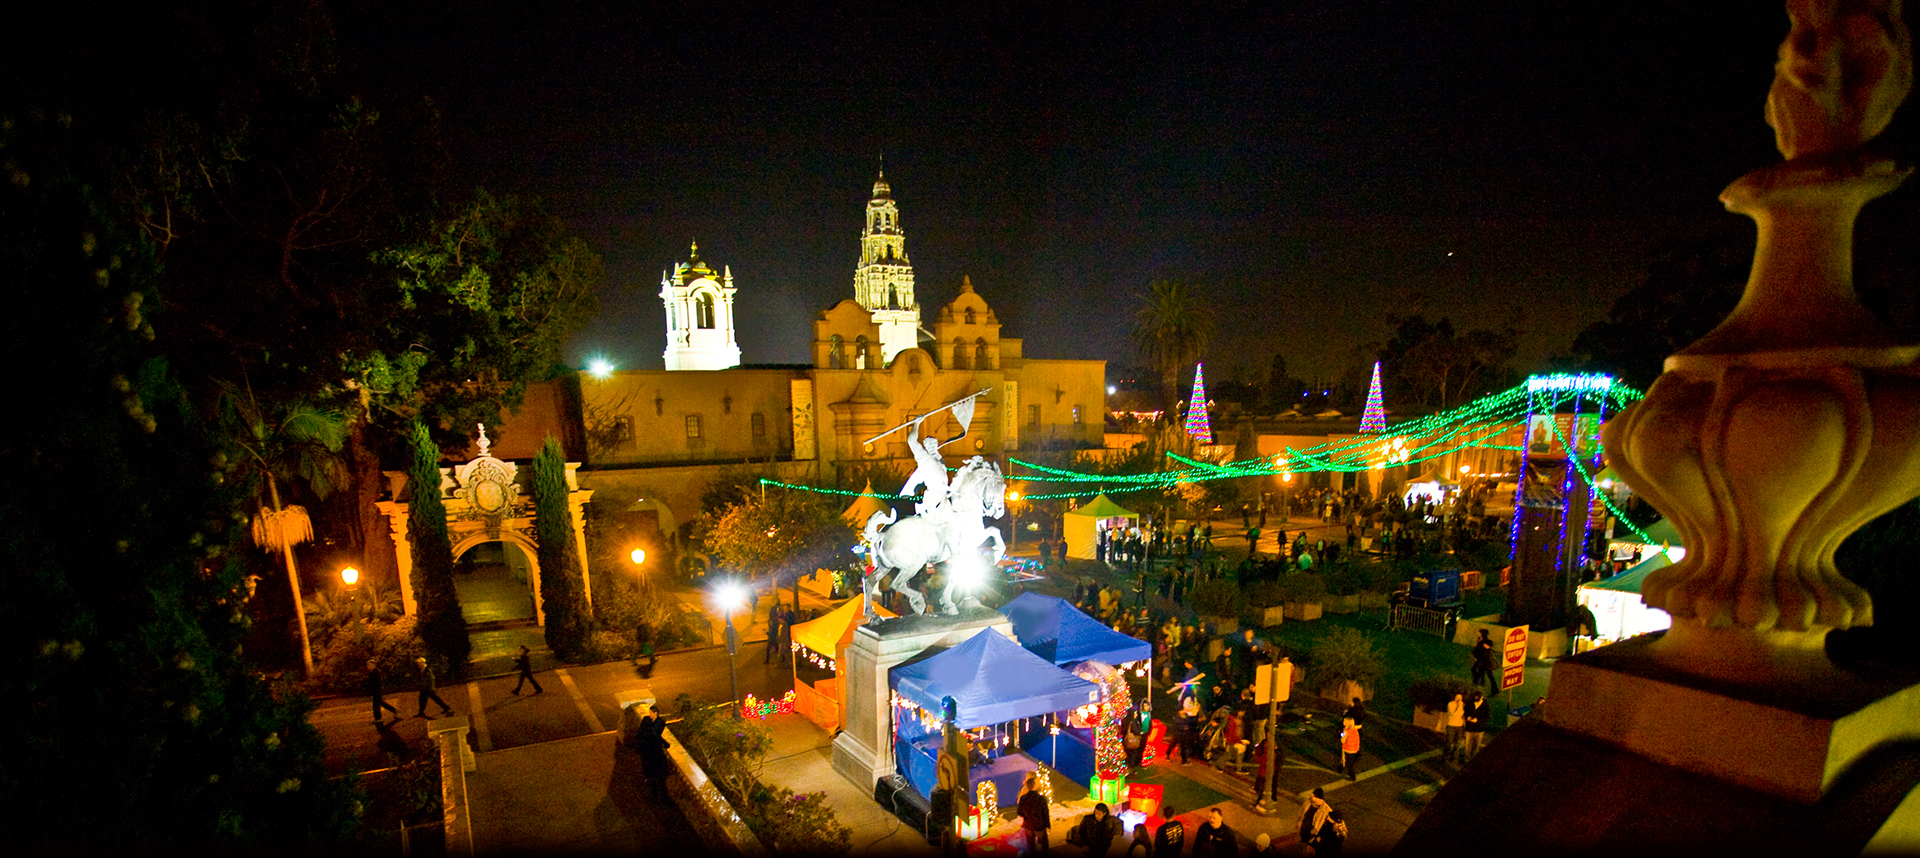 40th Annual December Nights at Balboa Park